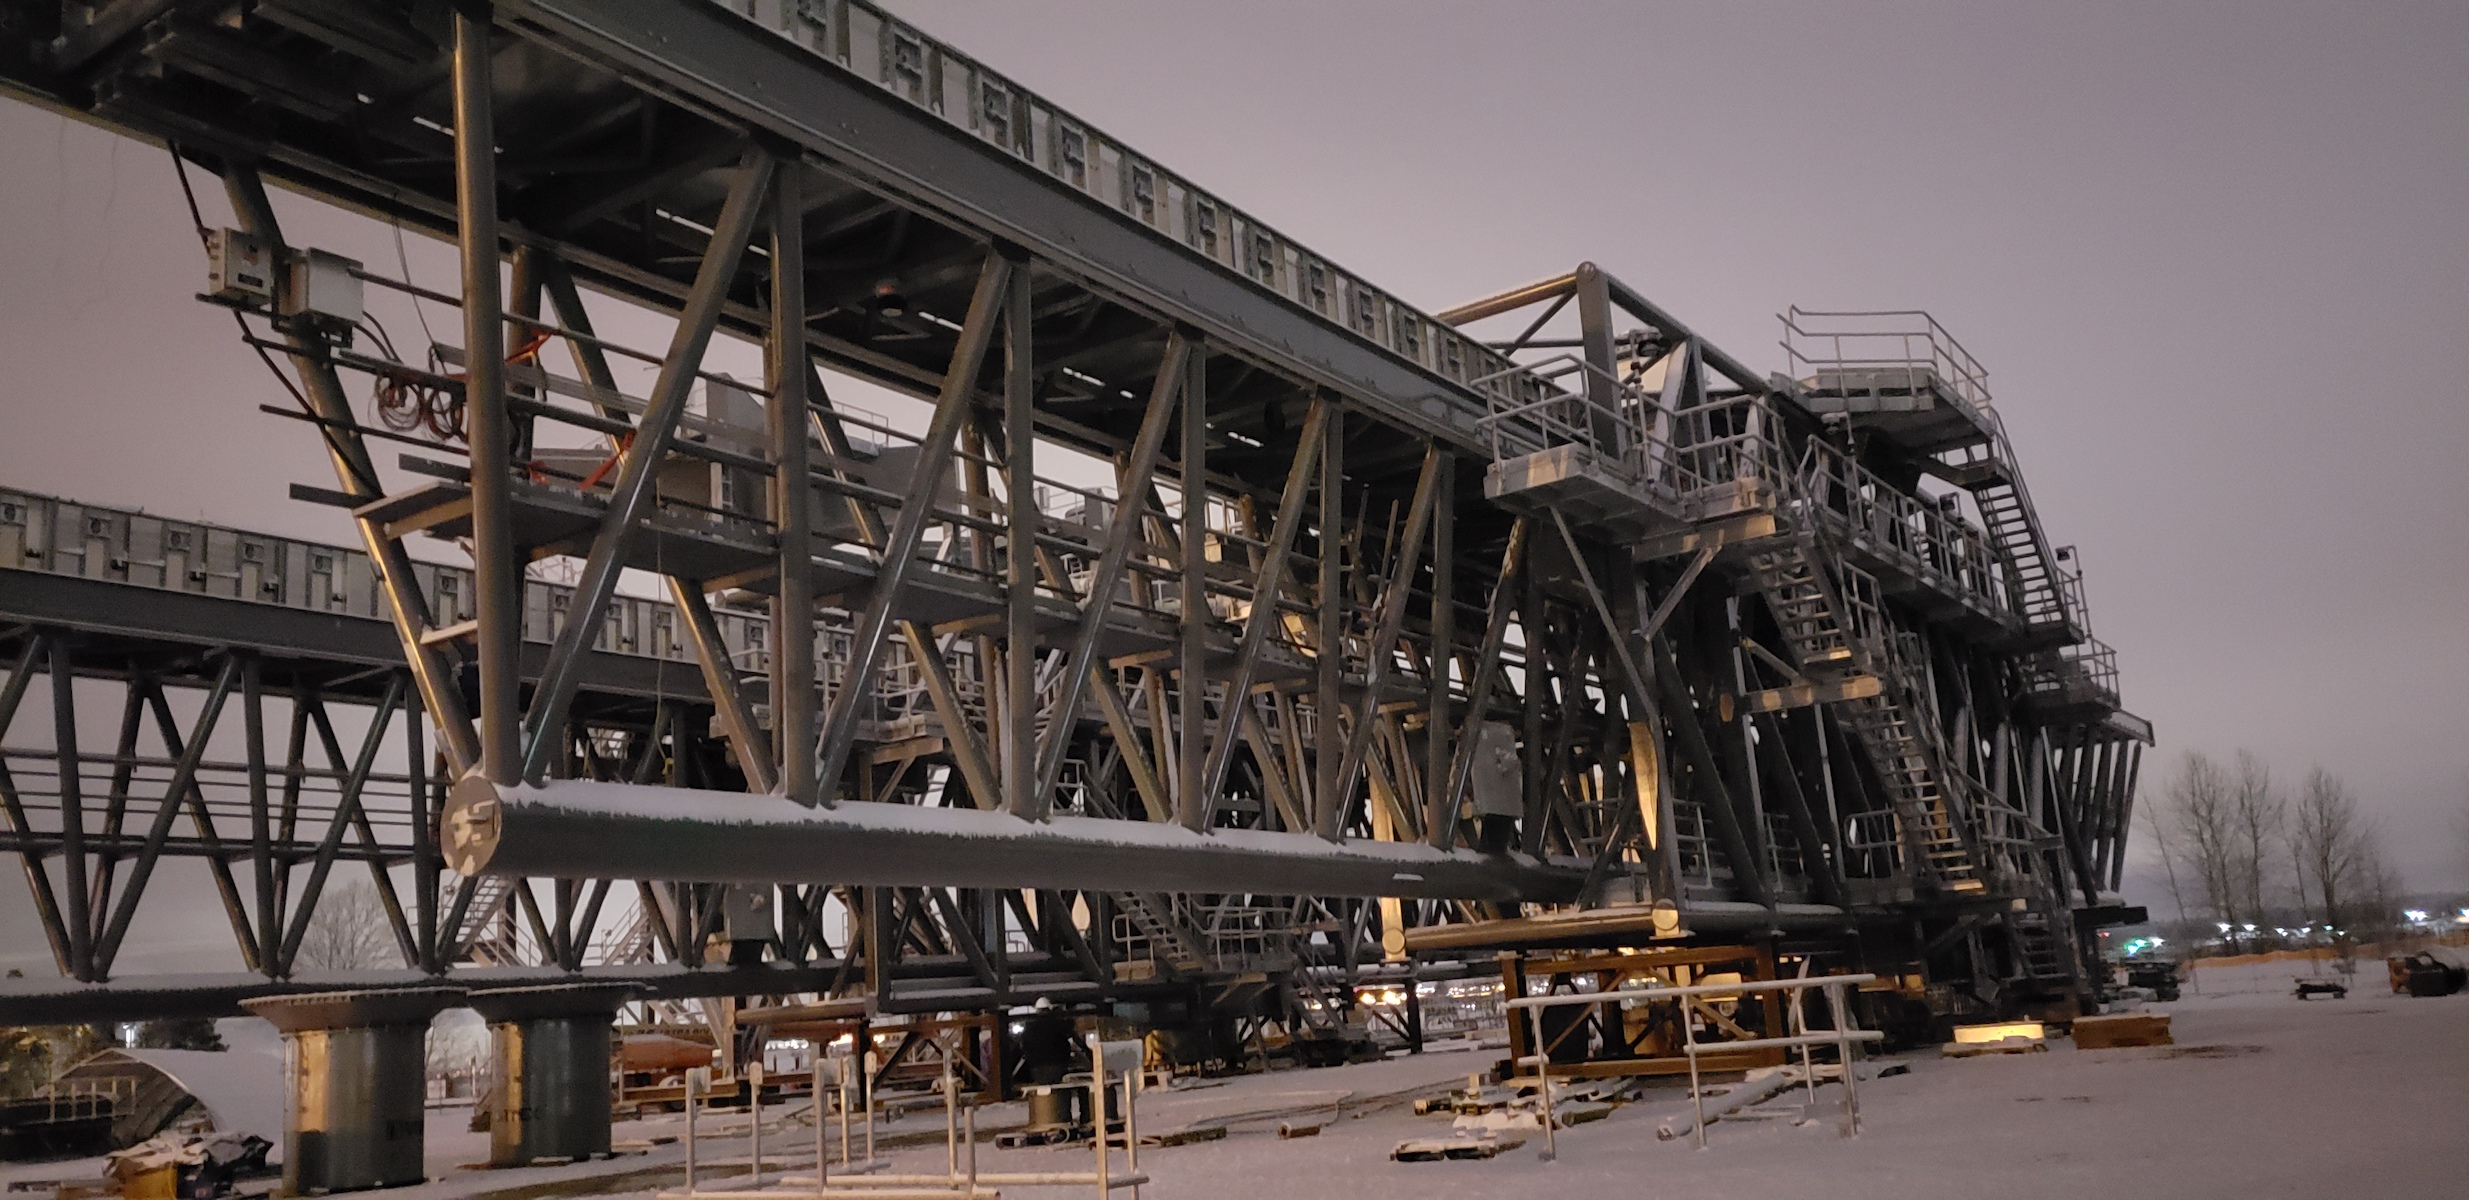 STRUCTURAL STEEL COMPANY IN VANCOUVER WASHINGTON